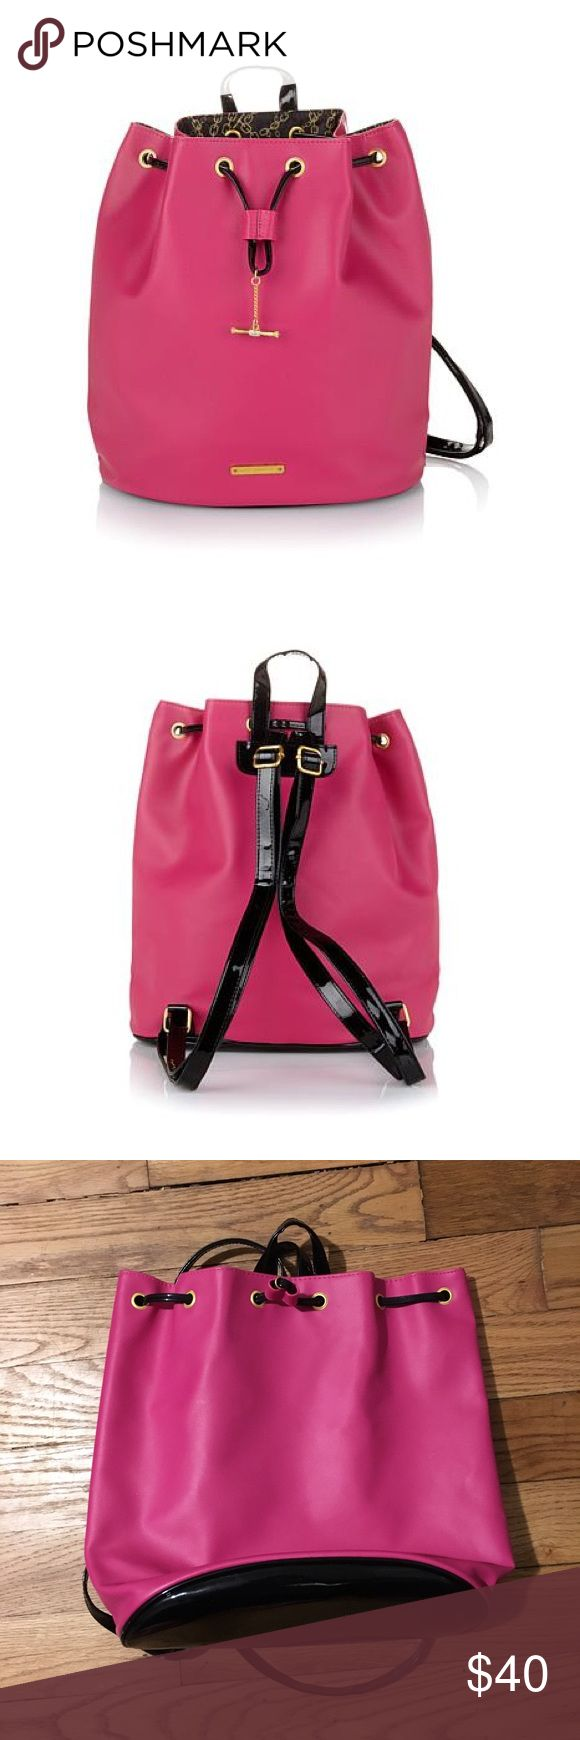 "JUICY COUTURE hot pink drawstring backpack Hot pink drawstring backpack with black trim  Perfect for a night out or during the day 2 patent leather adjustable straps and a patent leather accent base Golden metal chain, logo plaque and taggle Approx. 30""L x 6-1/3""W x 34""H Textured plastic body with patent plastic trim and polyester lining Bags"